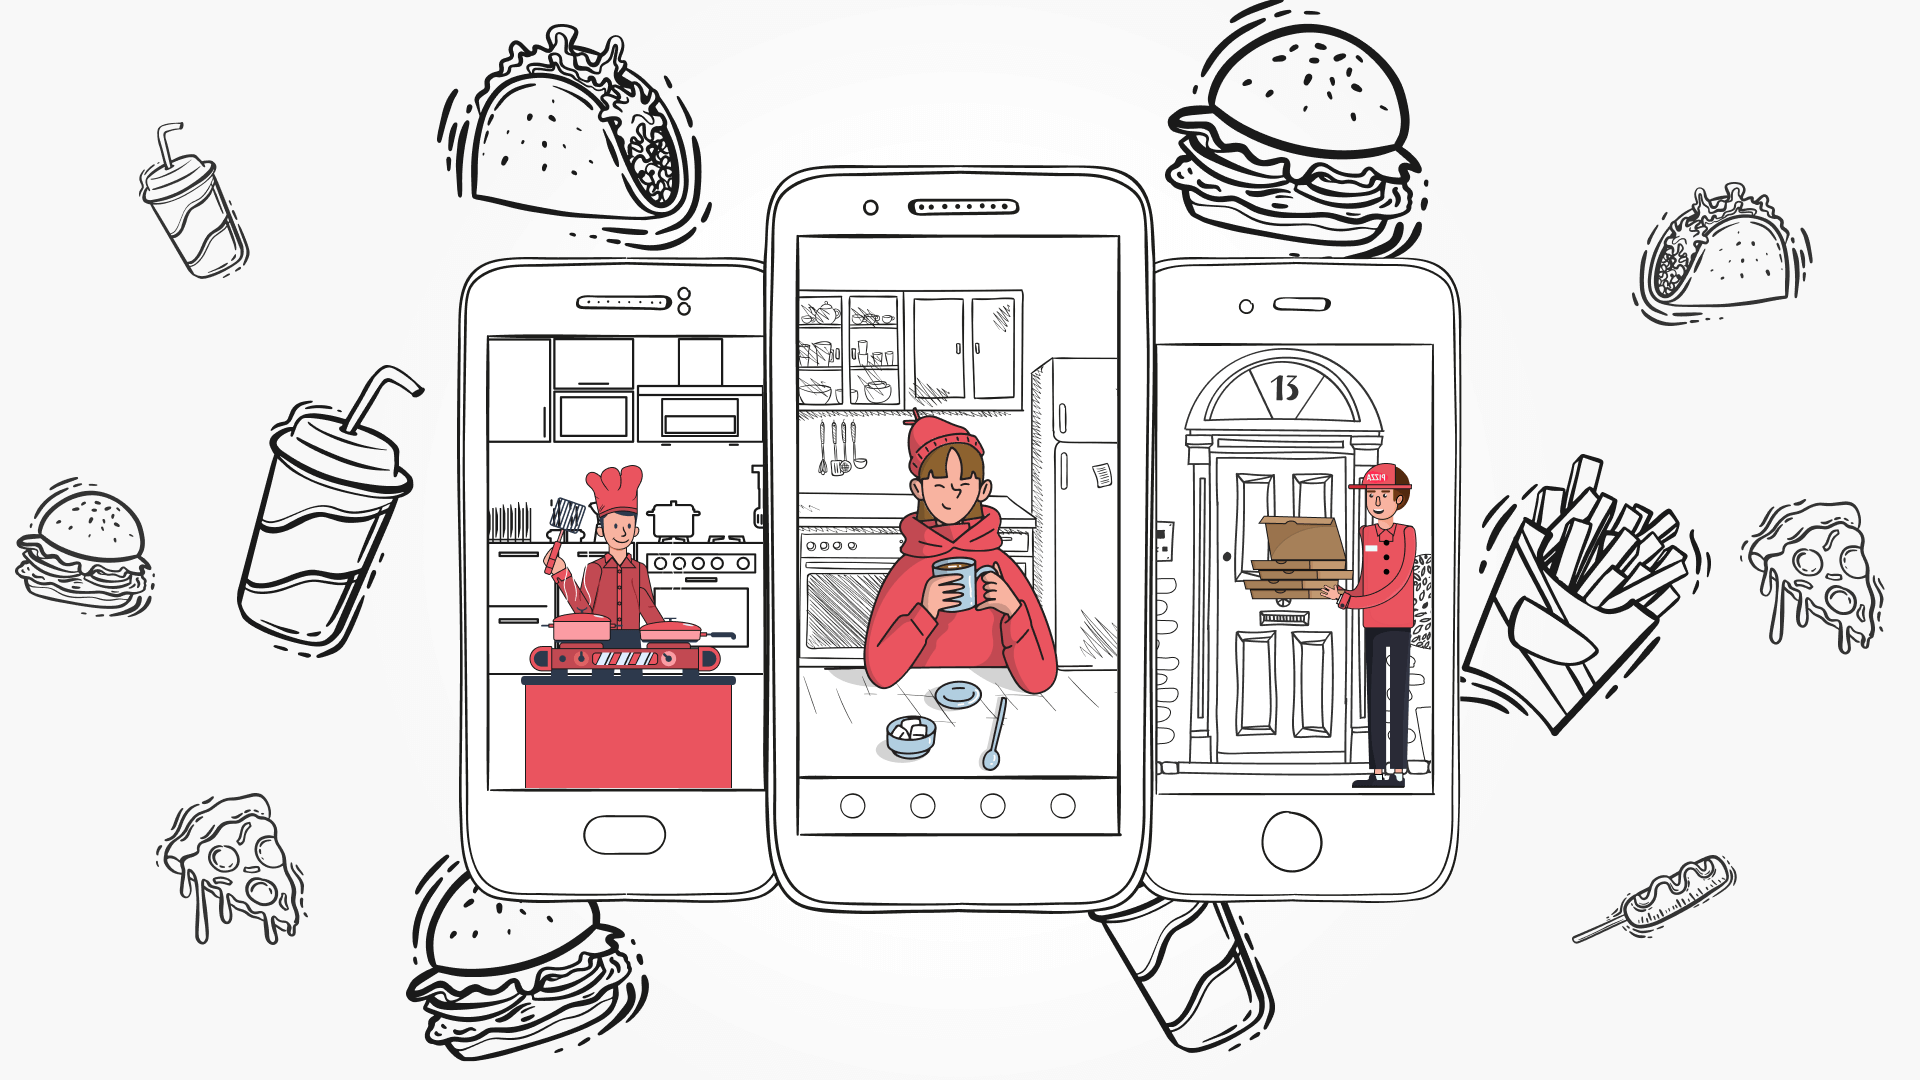 Key features to implement into good on-demand food delivery app.